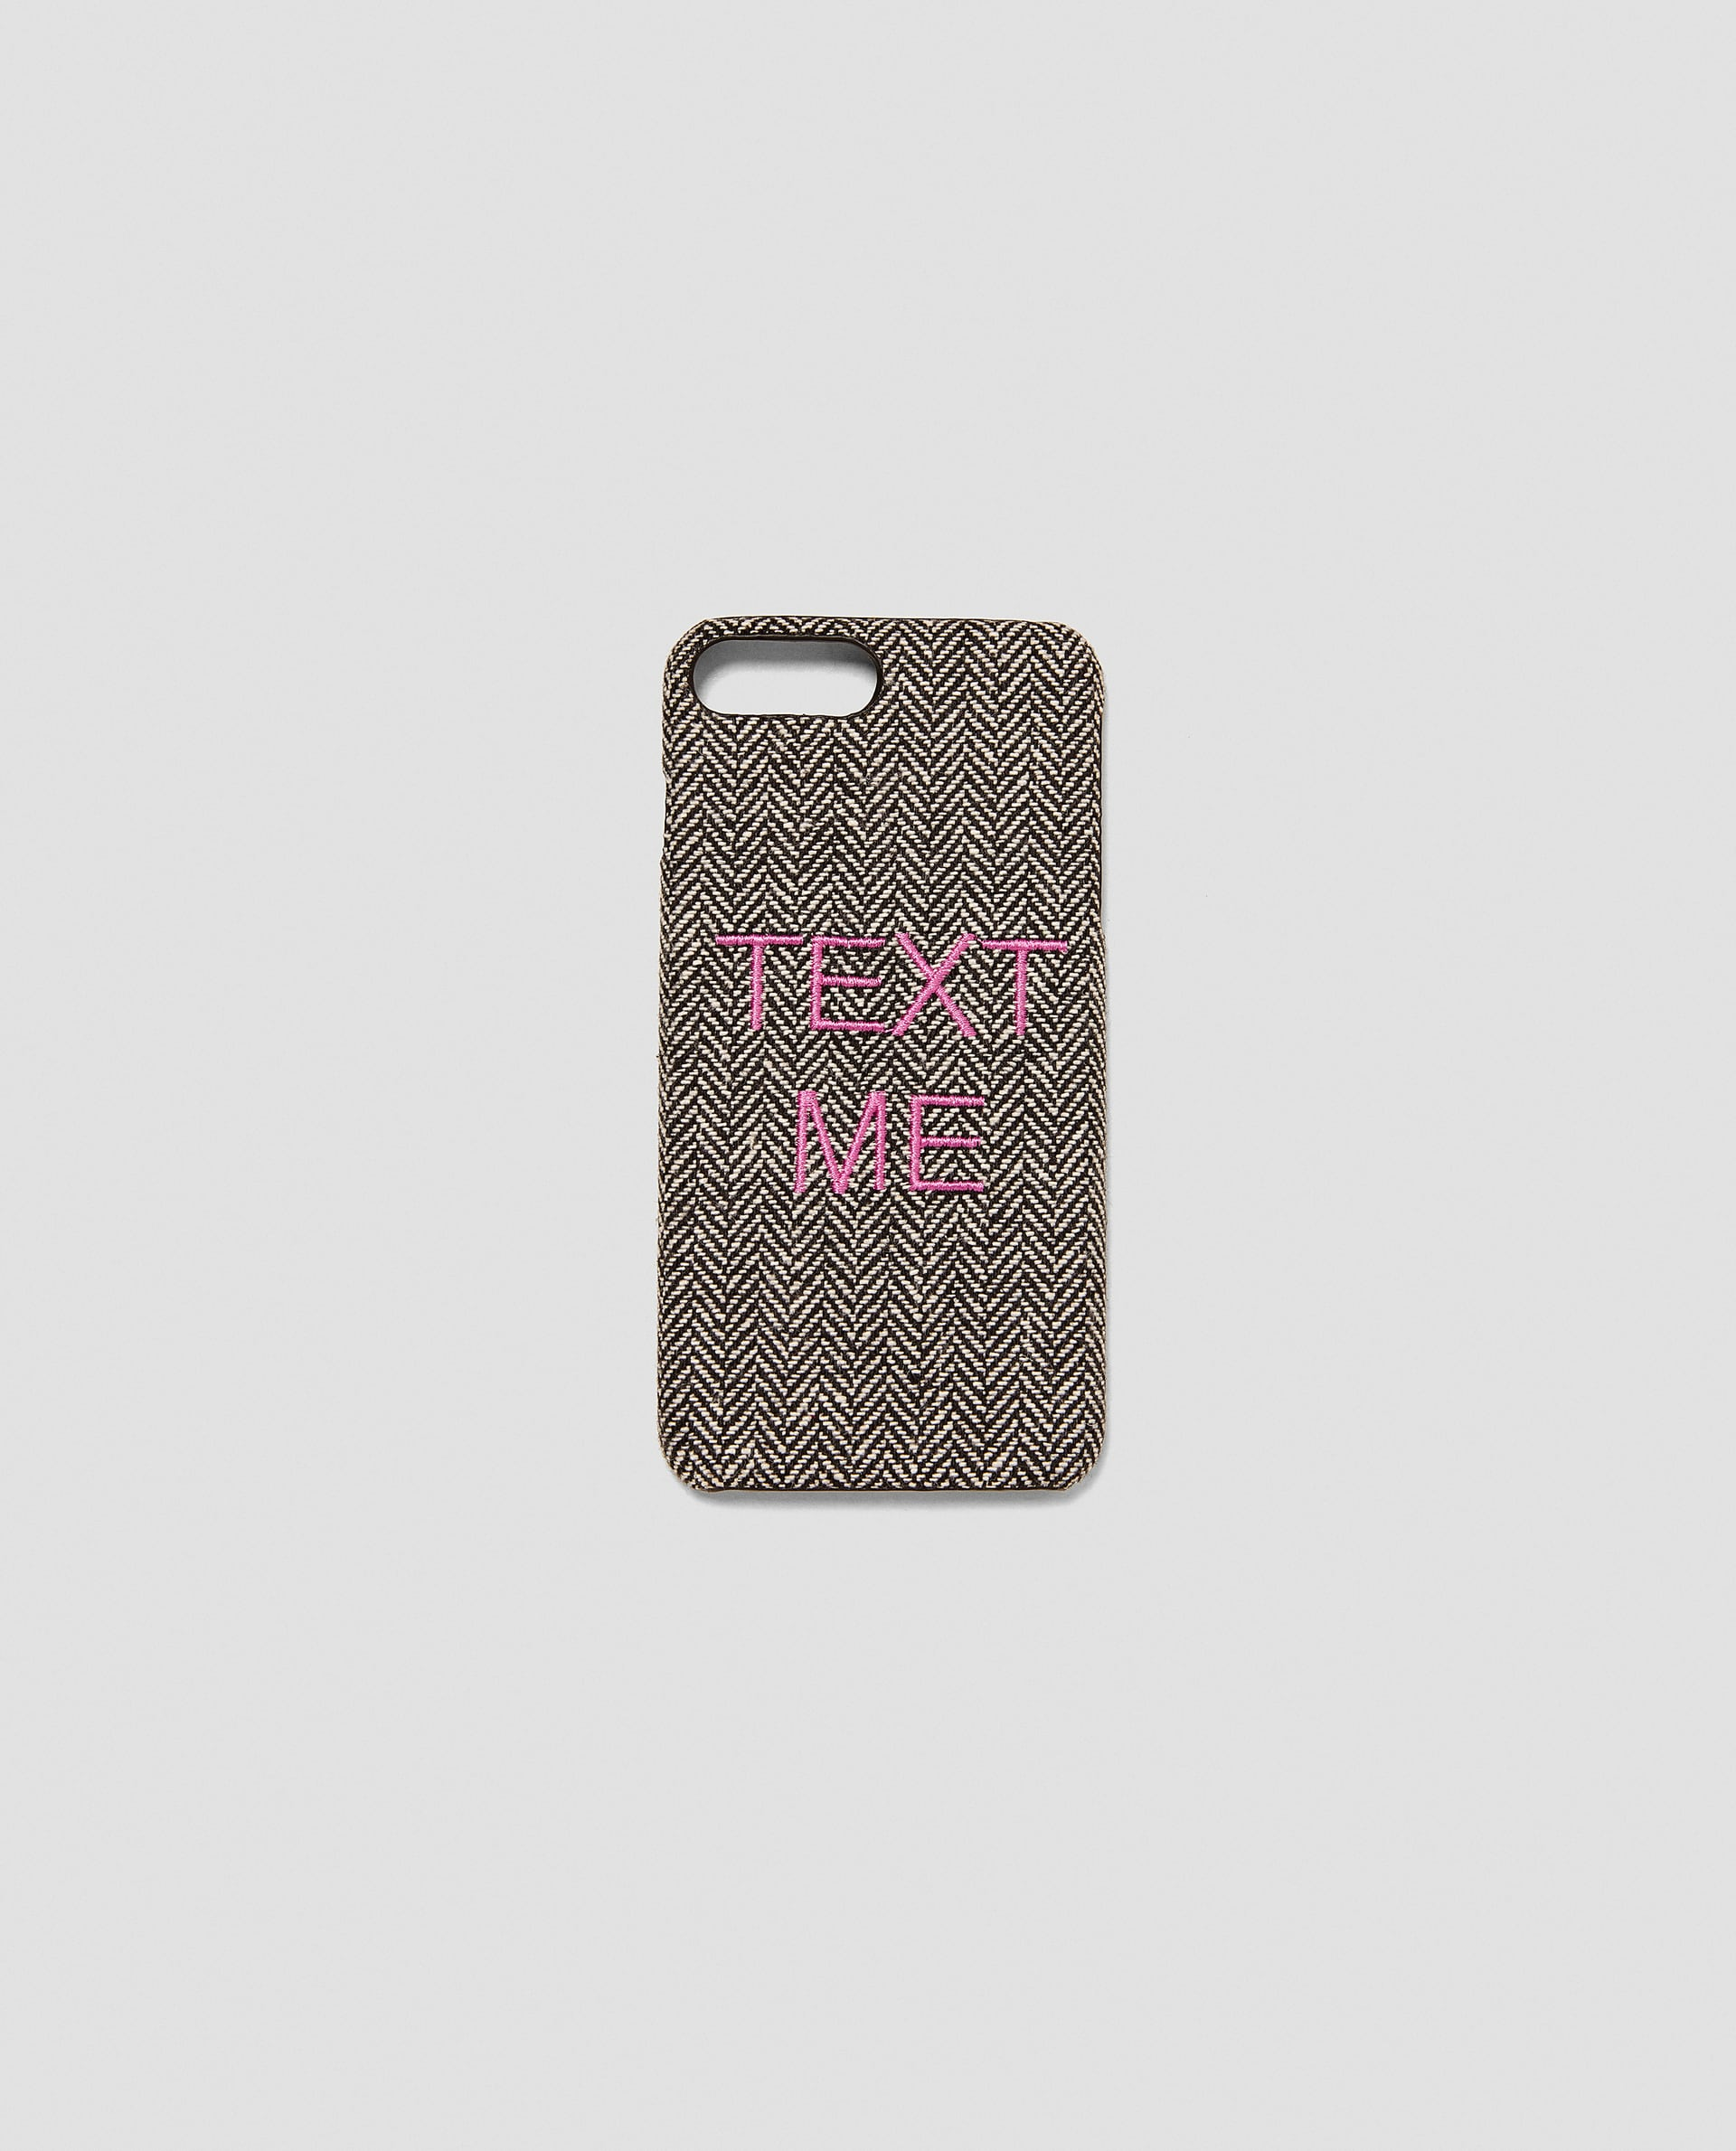 MOBILE PHONE CASE WITH SLOGAN Details âÂÂ'¹ 990.00